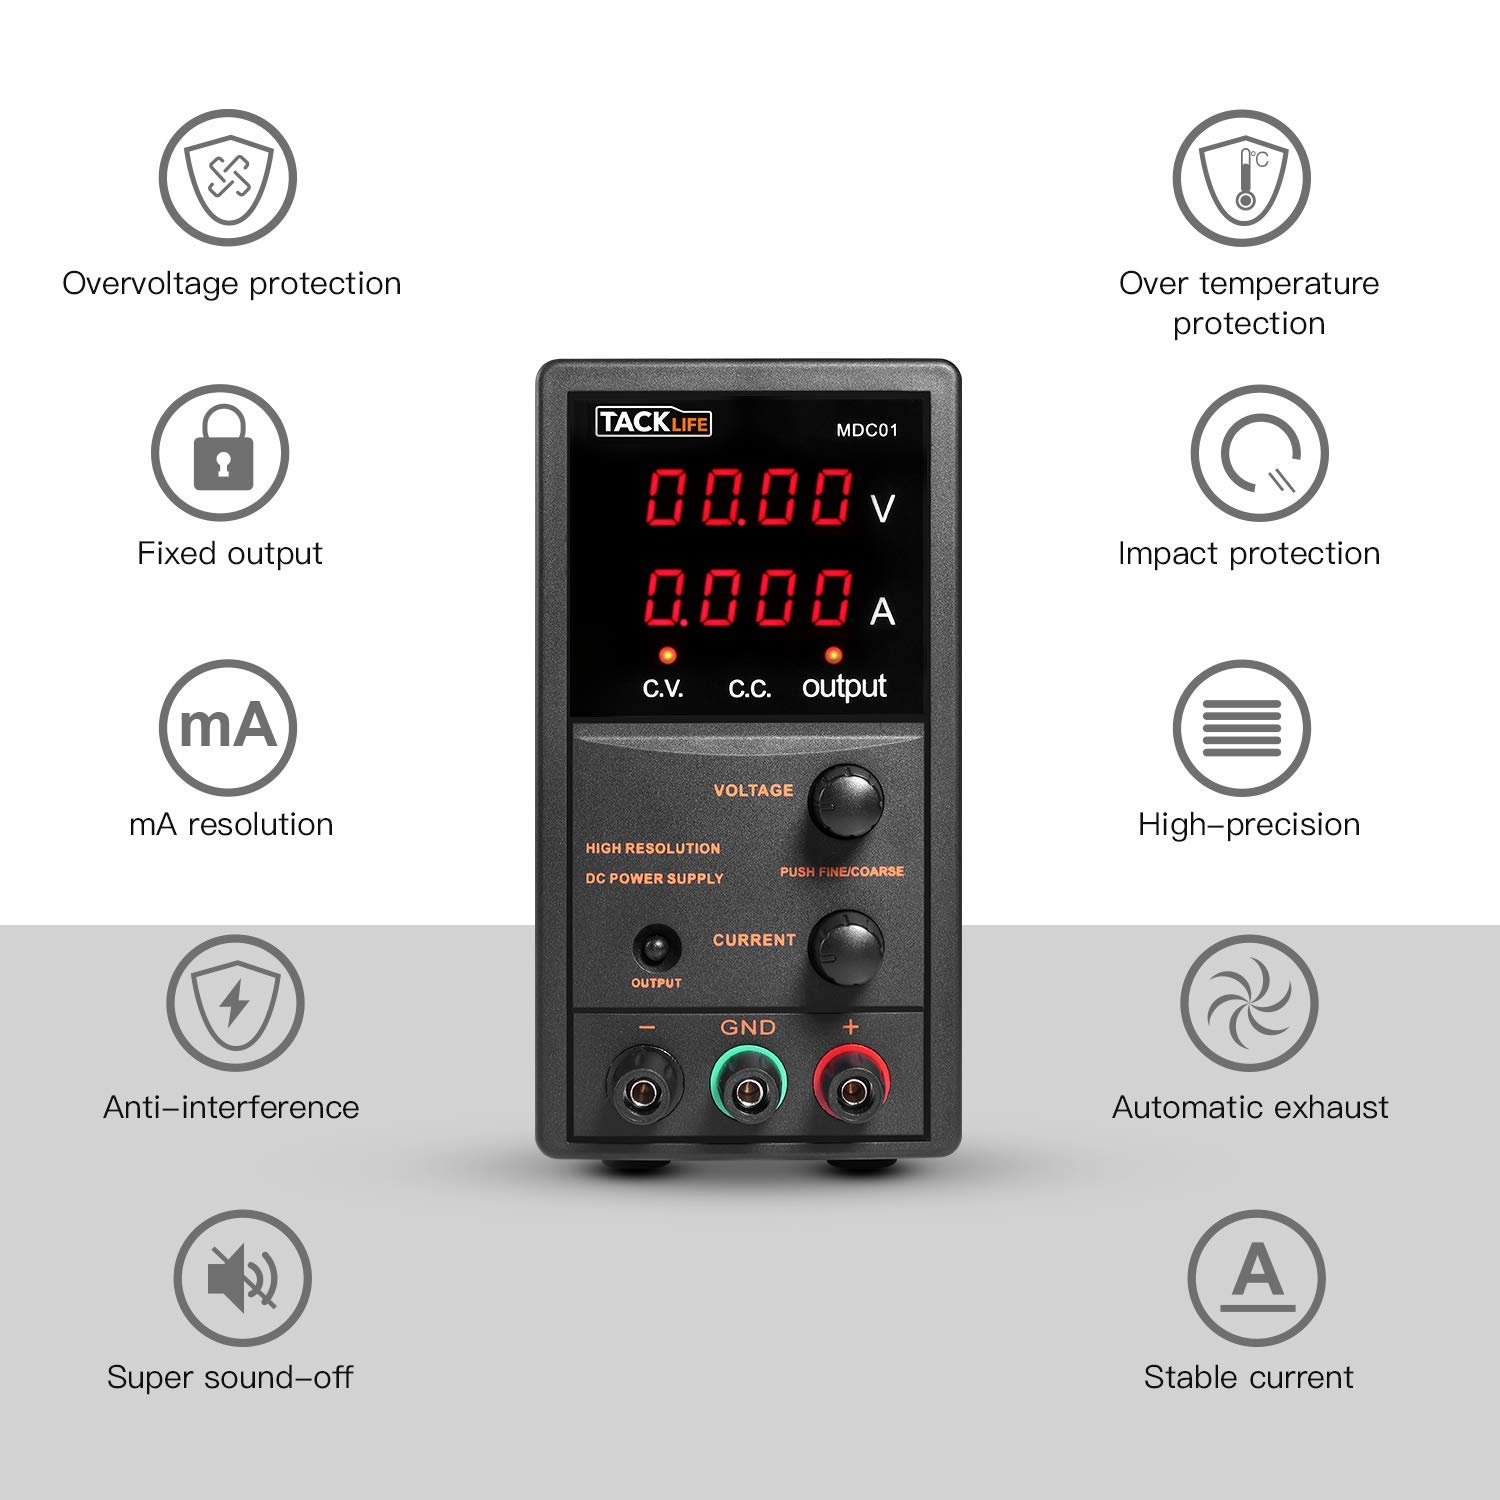 DC Power Supply Variable, Tacklife 4 digital LCD display (0-30V/0-5A) Switching DC Regulated Power Supply, Reverse polarity/high temperature protection, with 110V/115CM Alligator Leads by TACKLIFE (Image #7)